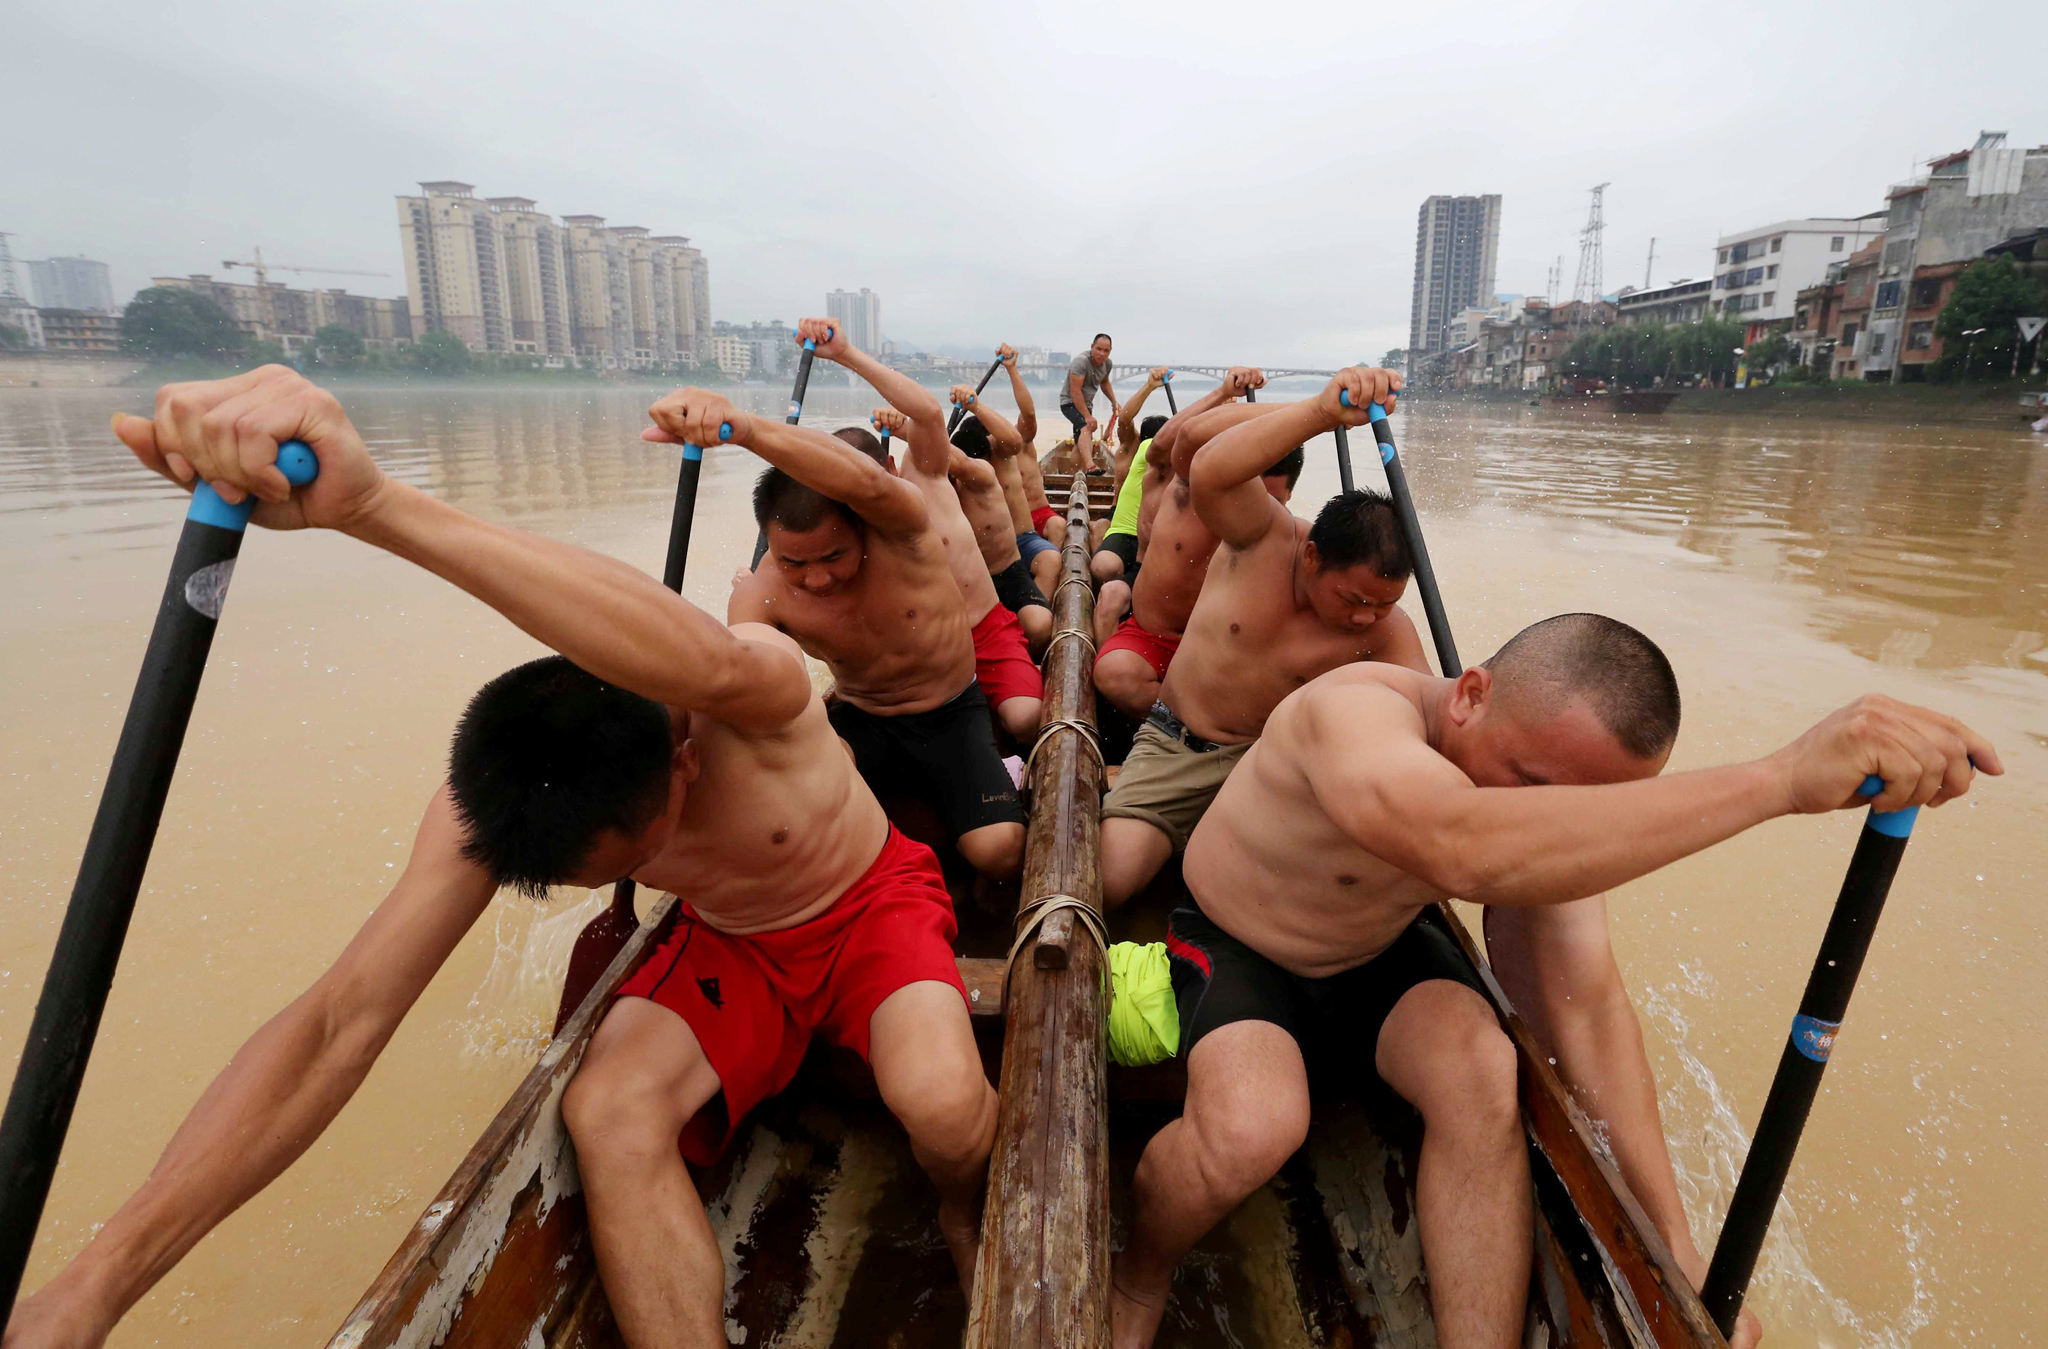 People participate during a training session on a river ahead of a local dragon boat competition in Liuzhou, Guangxi Zhuang Autonomous Region, China, June 14, 2016. REUTERS/Stringer ATTENTION EDITORS - THIS IMAGE WAS PROVIDED BY A THIRD PARTY. EDITORIAL USE ONLY. CHINA OUT. NO COMMERCIAL OR EDITORIAL SALES IN CHINA.